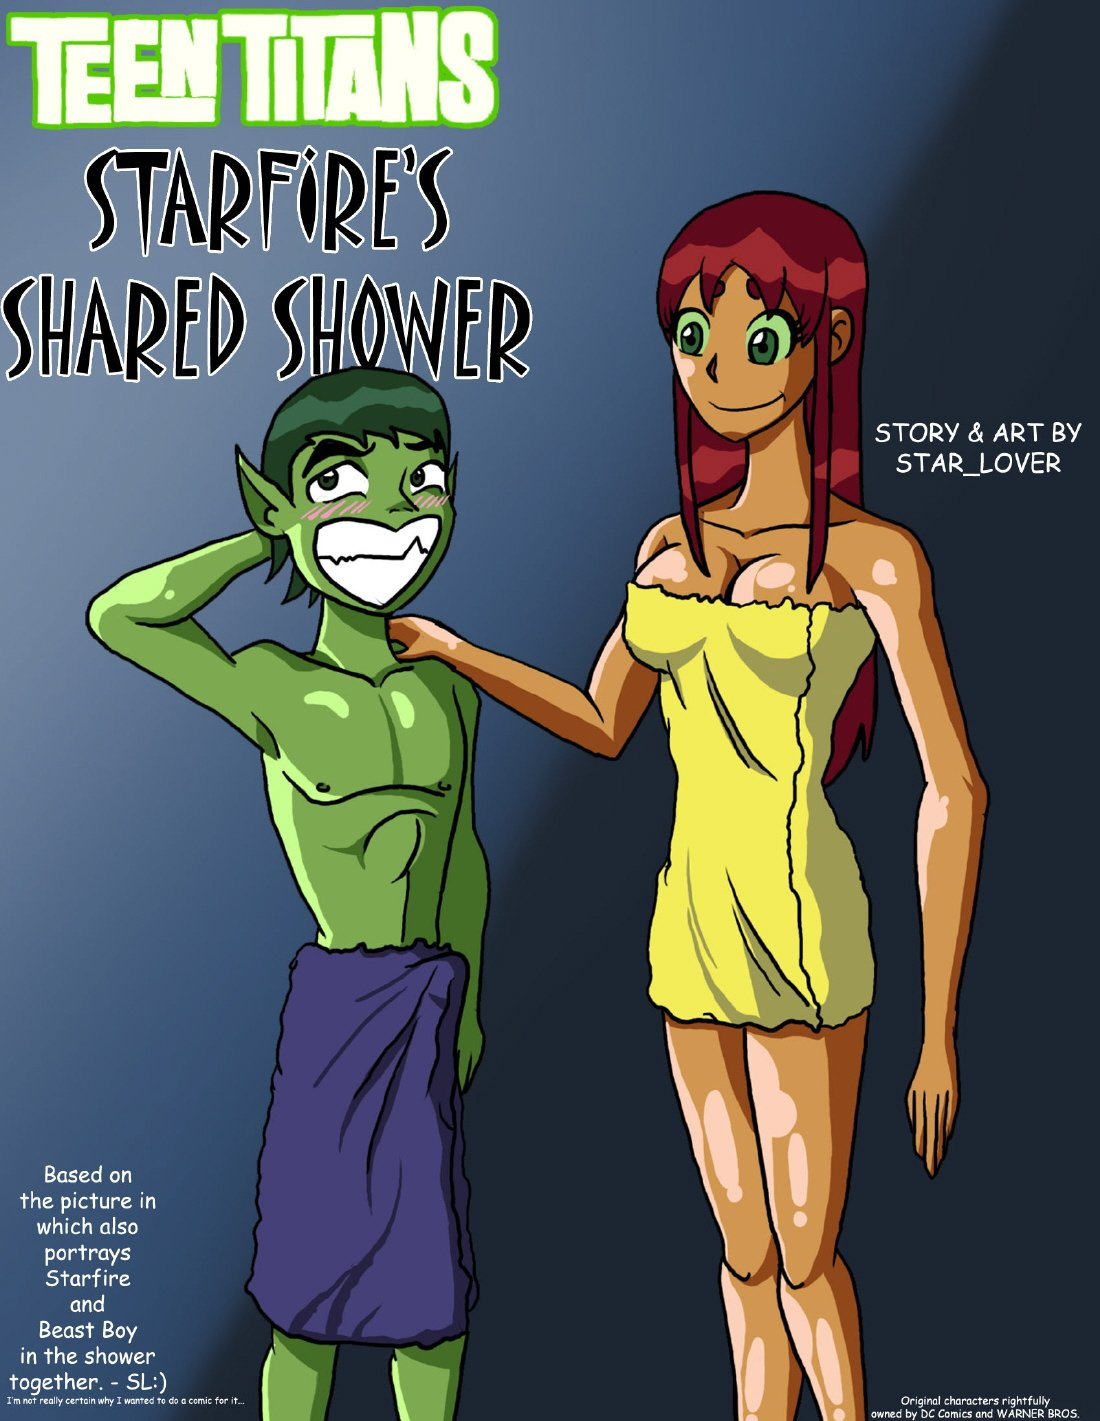 [Star Lover] Starfire's Shared Shower (Teen Titans)